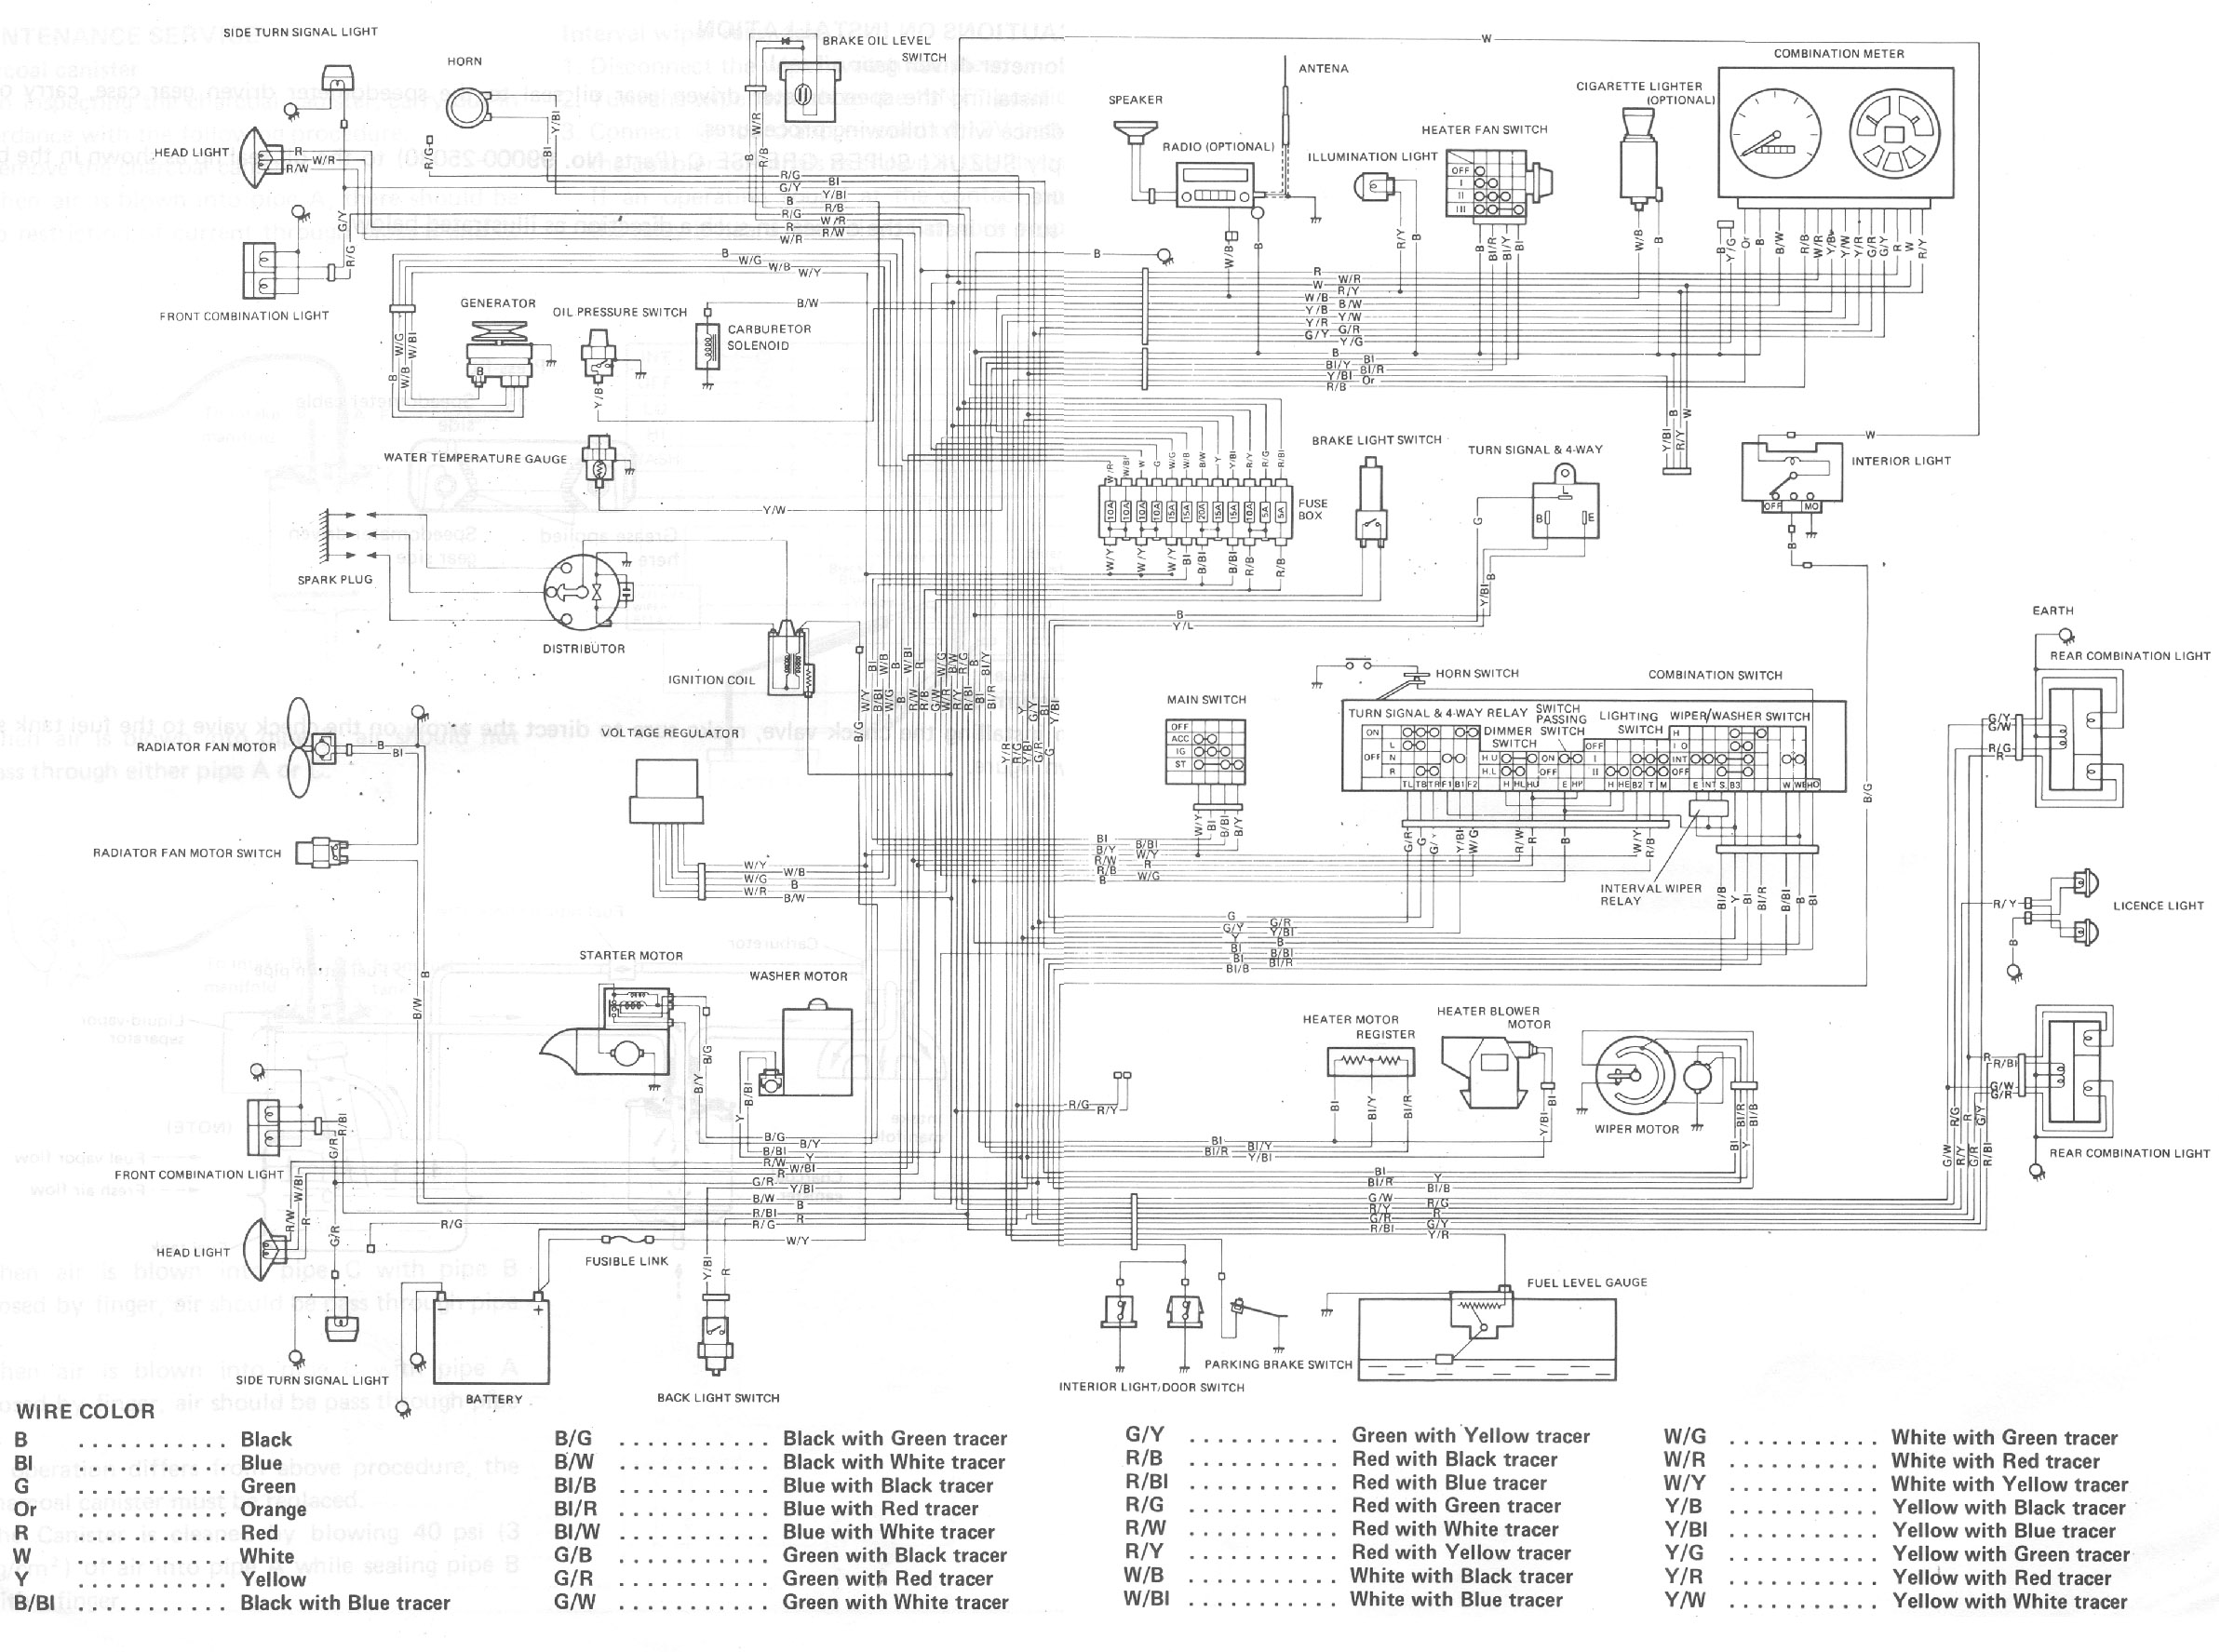 Electric_diagram buggynews buggy forum \u2022 view topic 800cc huaihai engine coil and bad boy buggy battery wiring diagram at bayanpartner.co